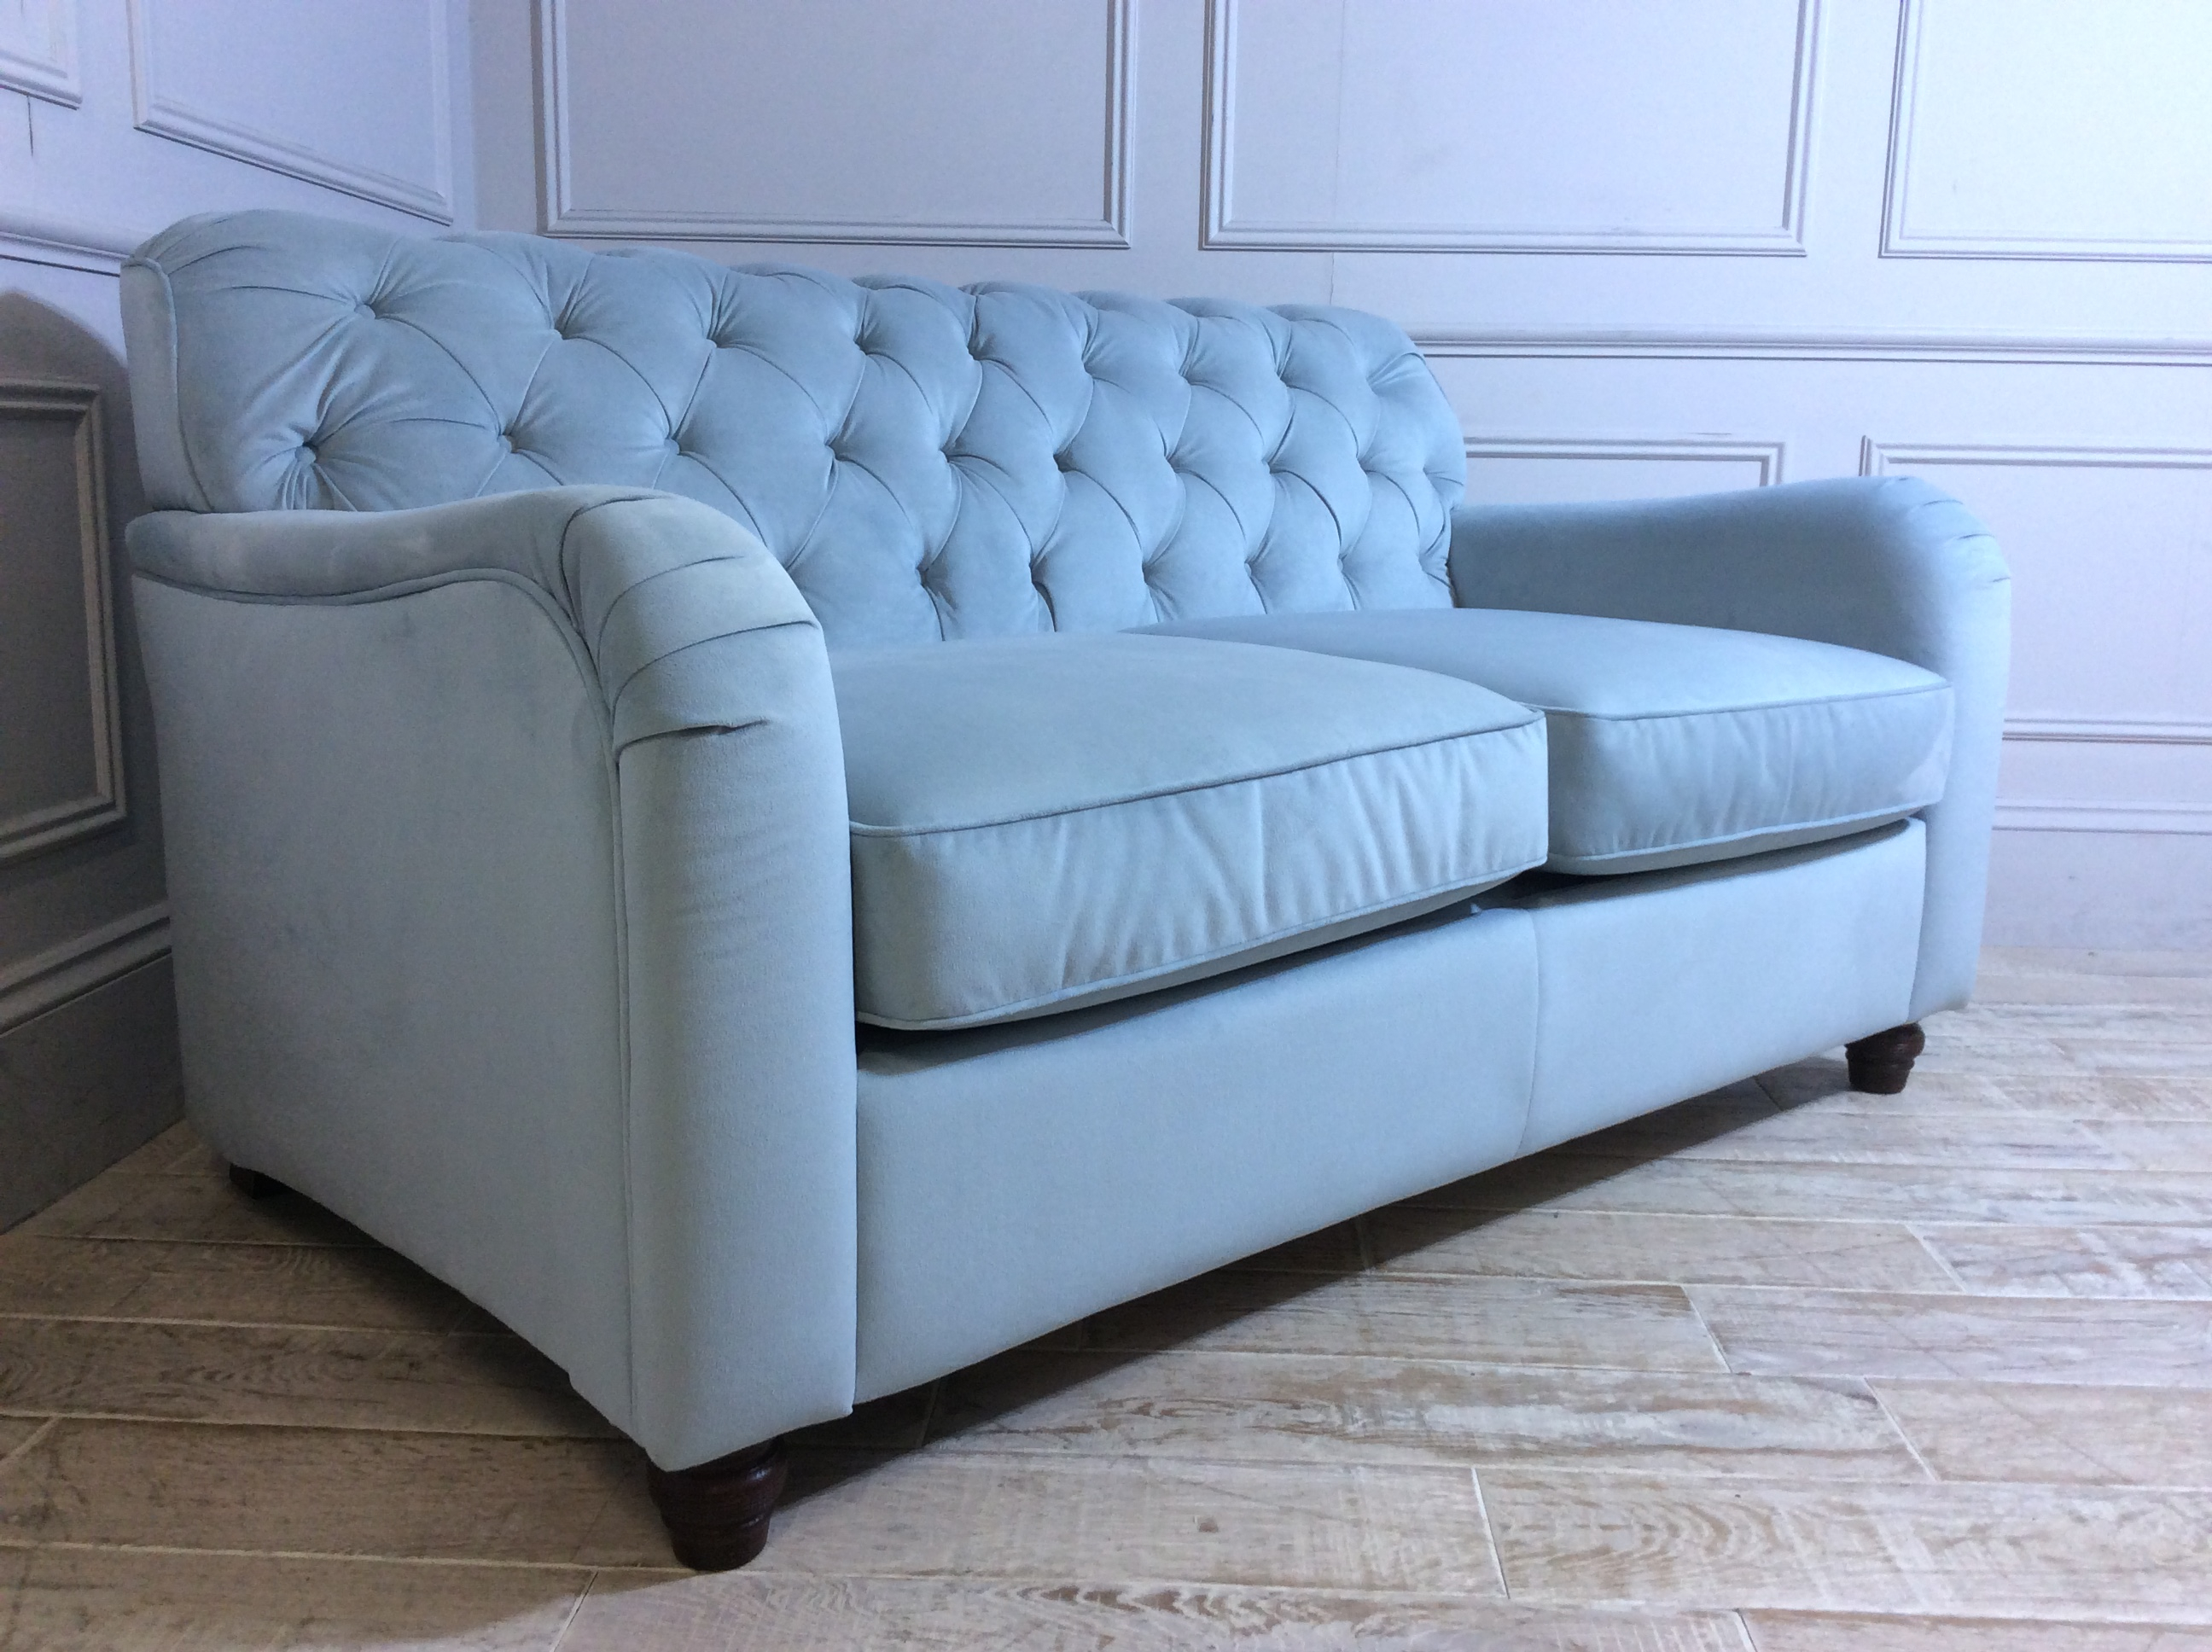 Bakewell 2 Seater Fabric Sofa Bed in Laurel